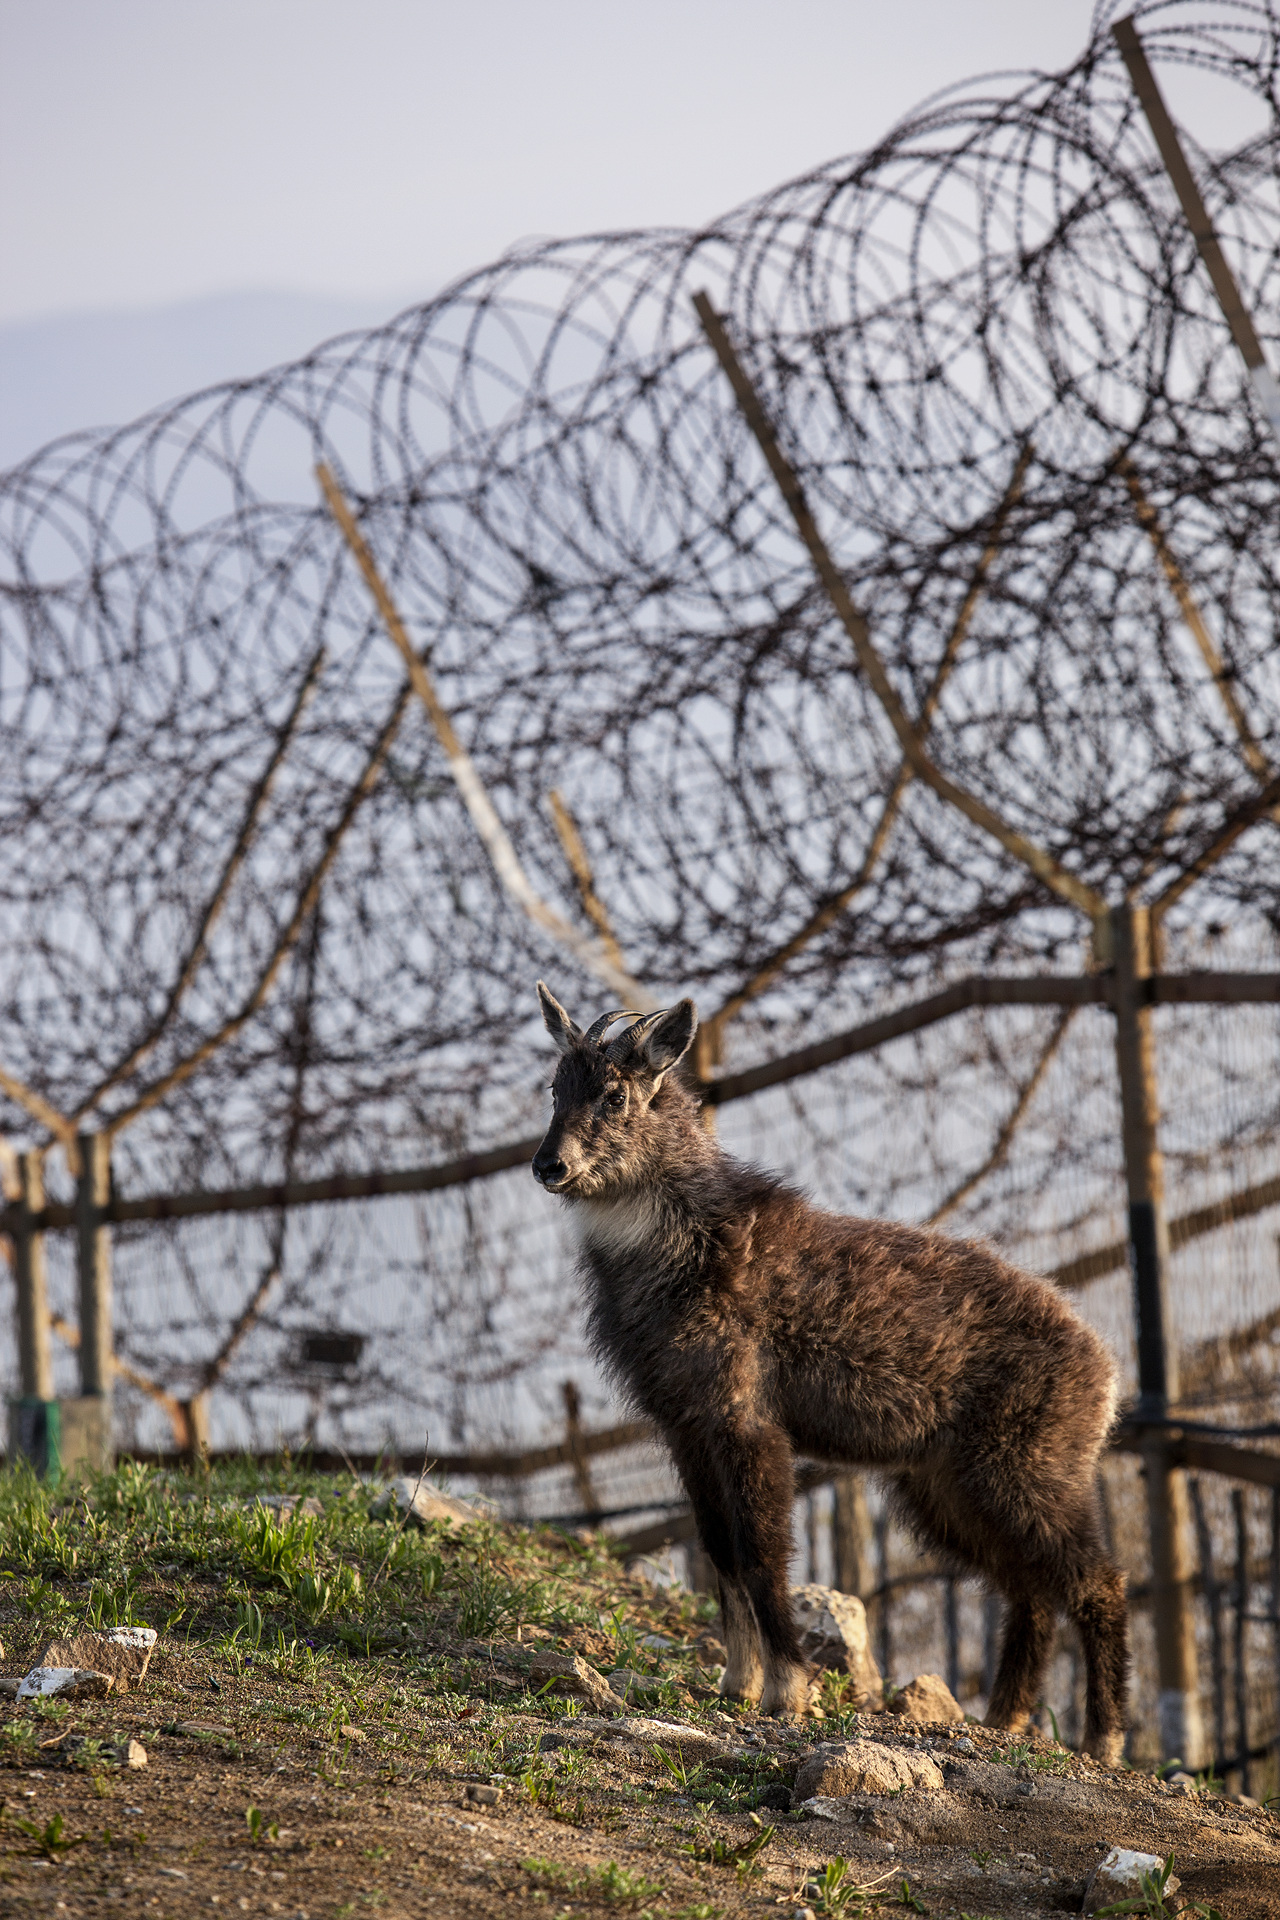 Endangered mountain goat stands in front of the barbed wire fence of the SSL, which is the southern border of the DMZ.